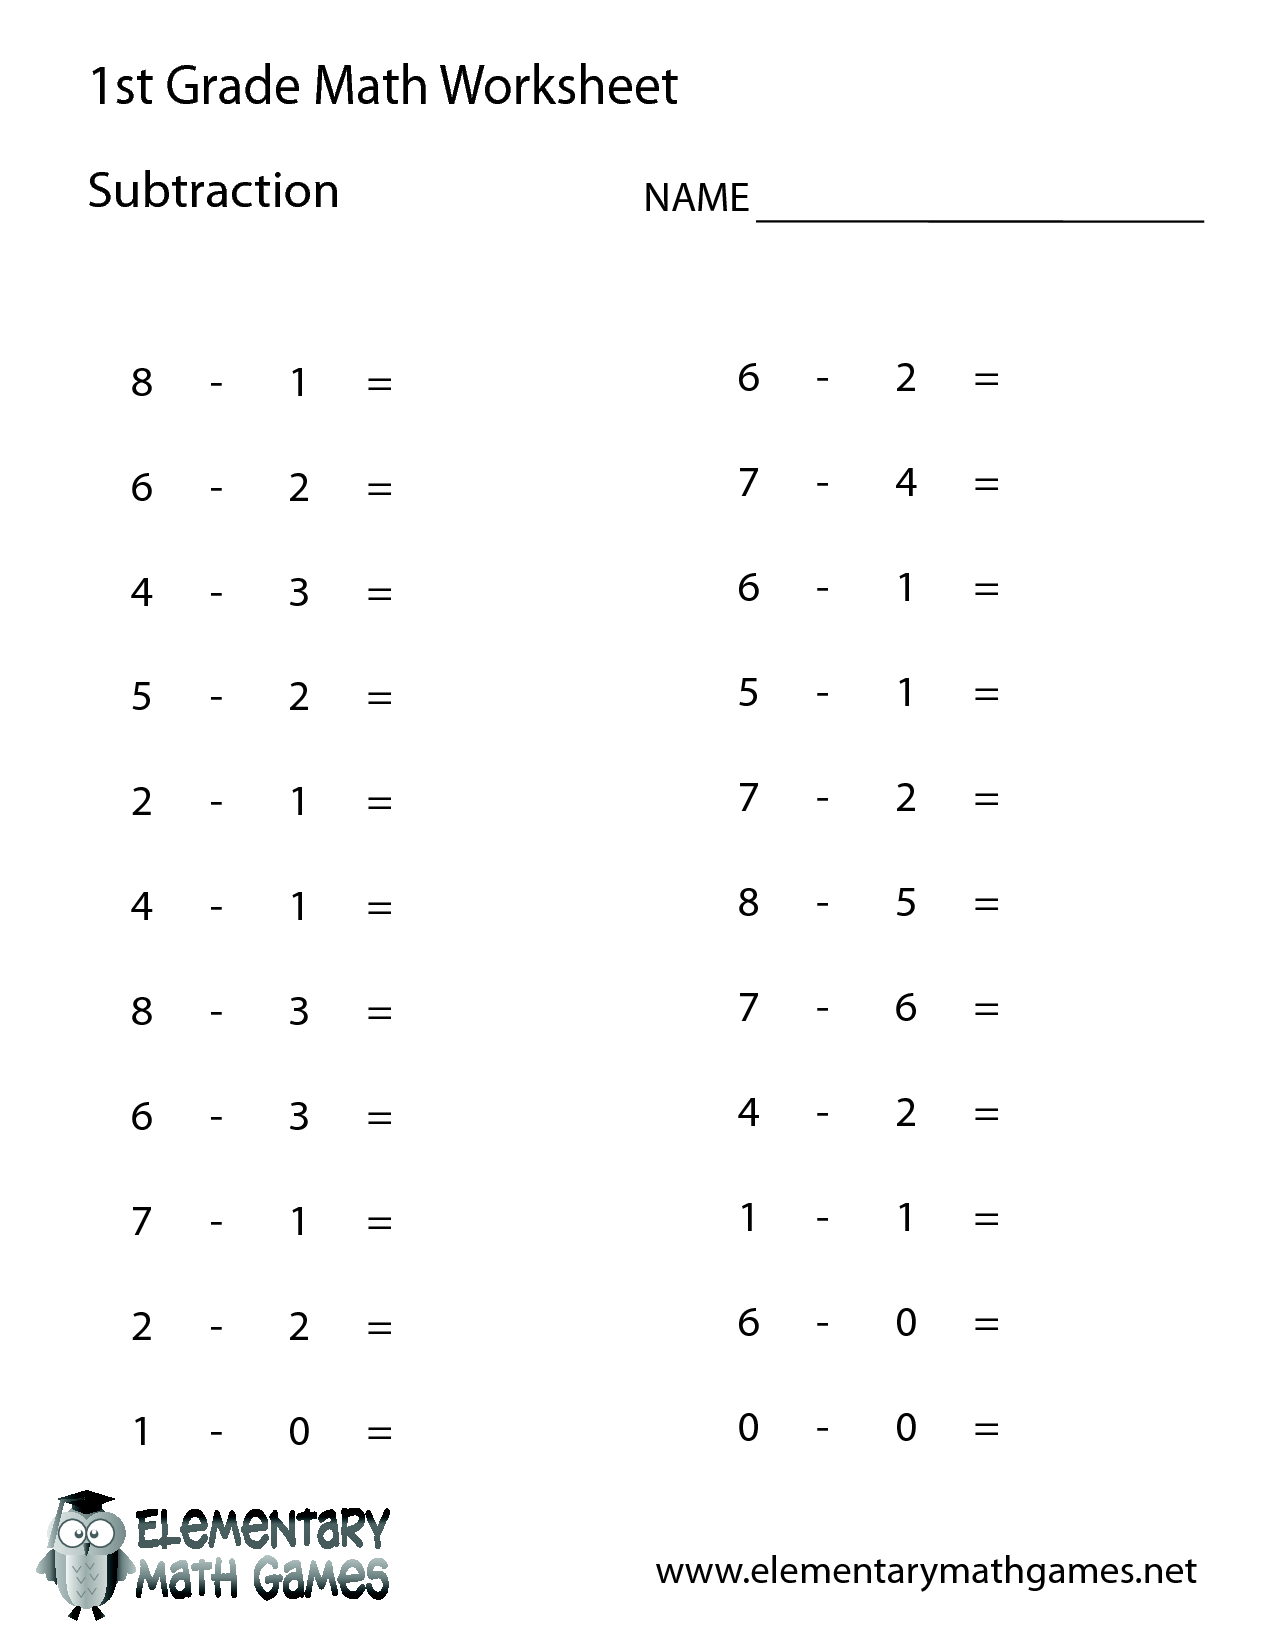 1st Grade Worksheet Category Page 2